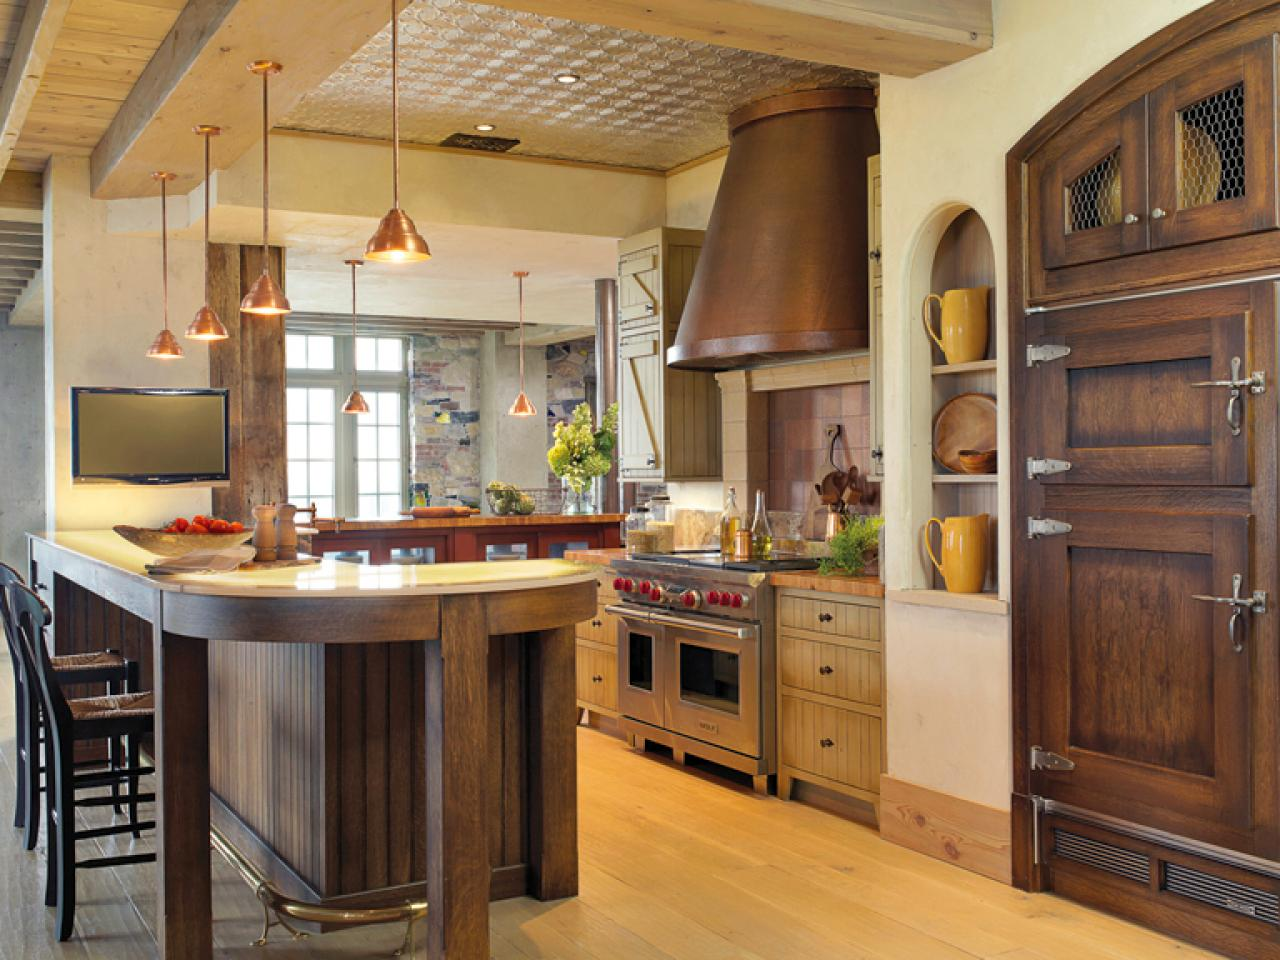 Rustic Elegance In The Kitchen Designs Choose